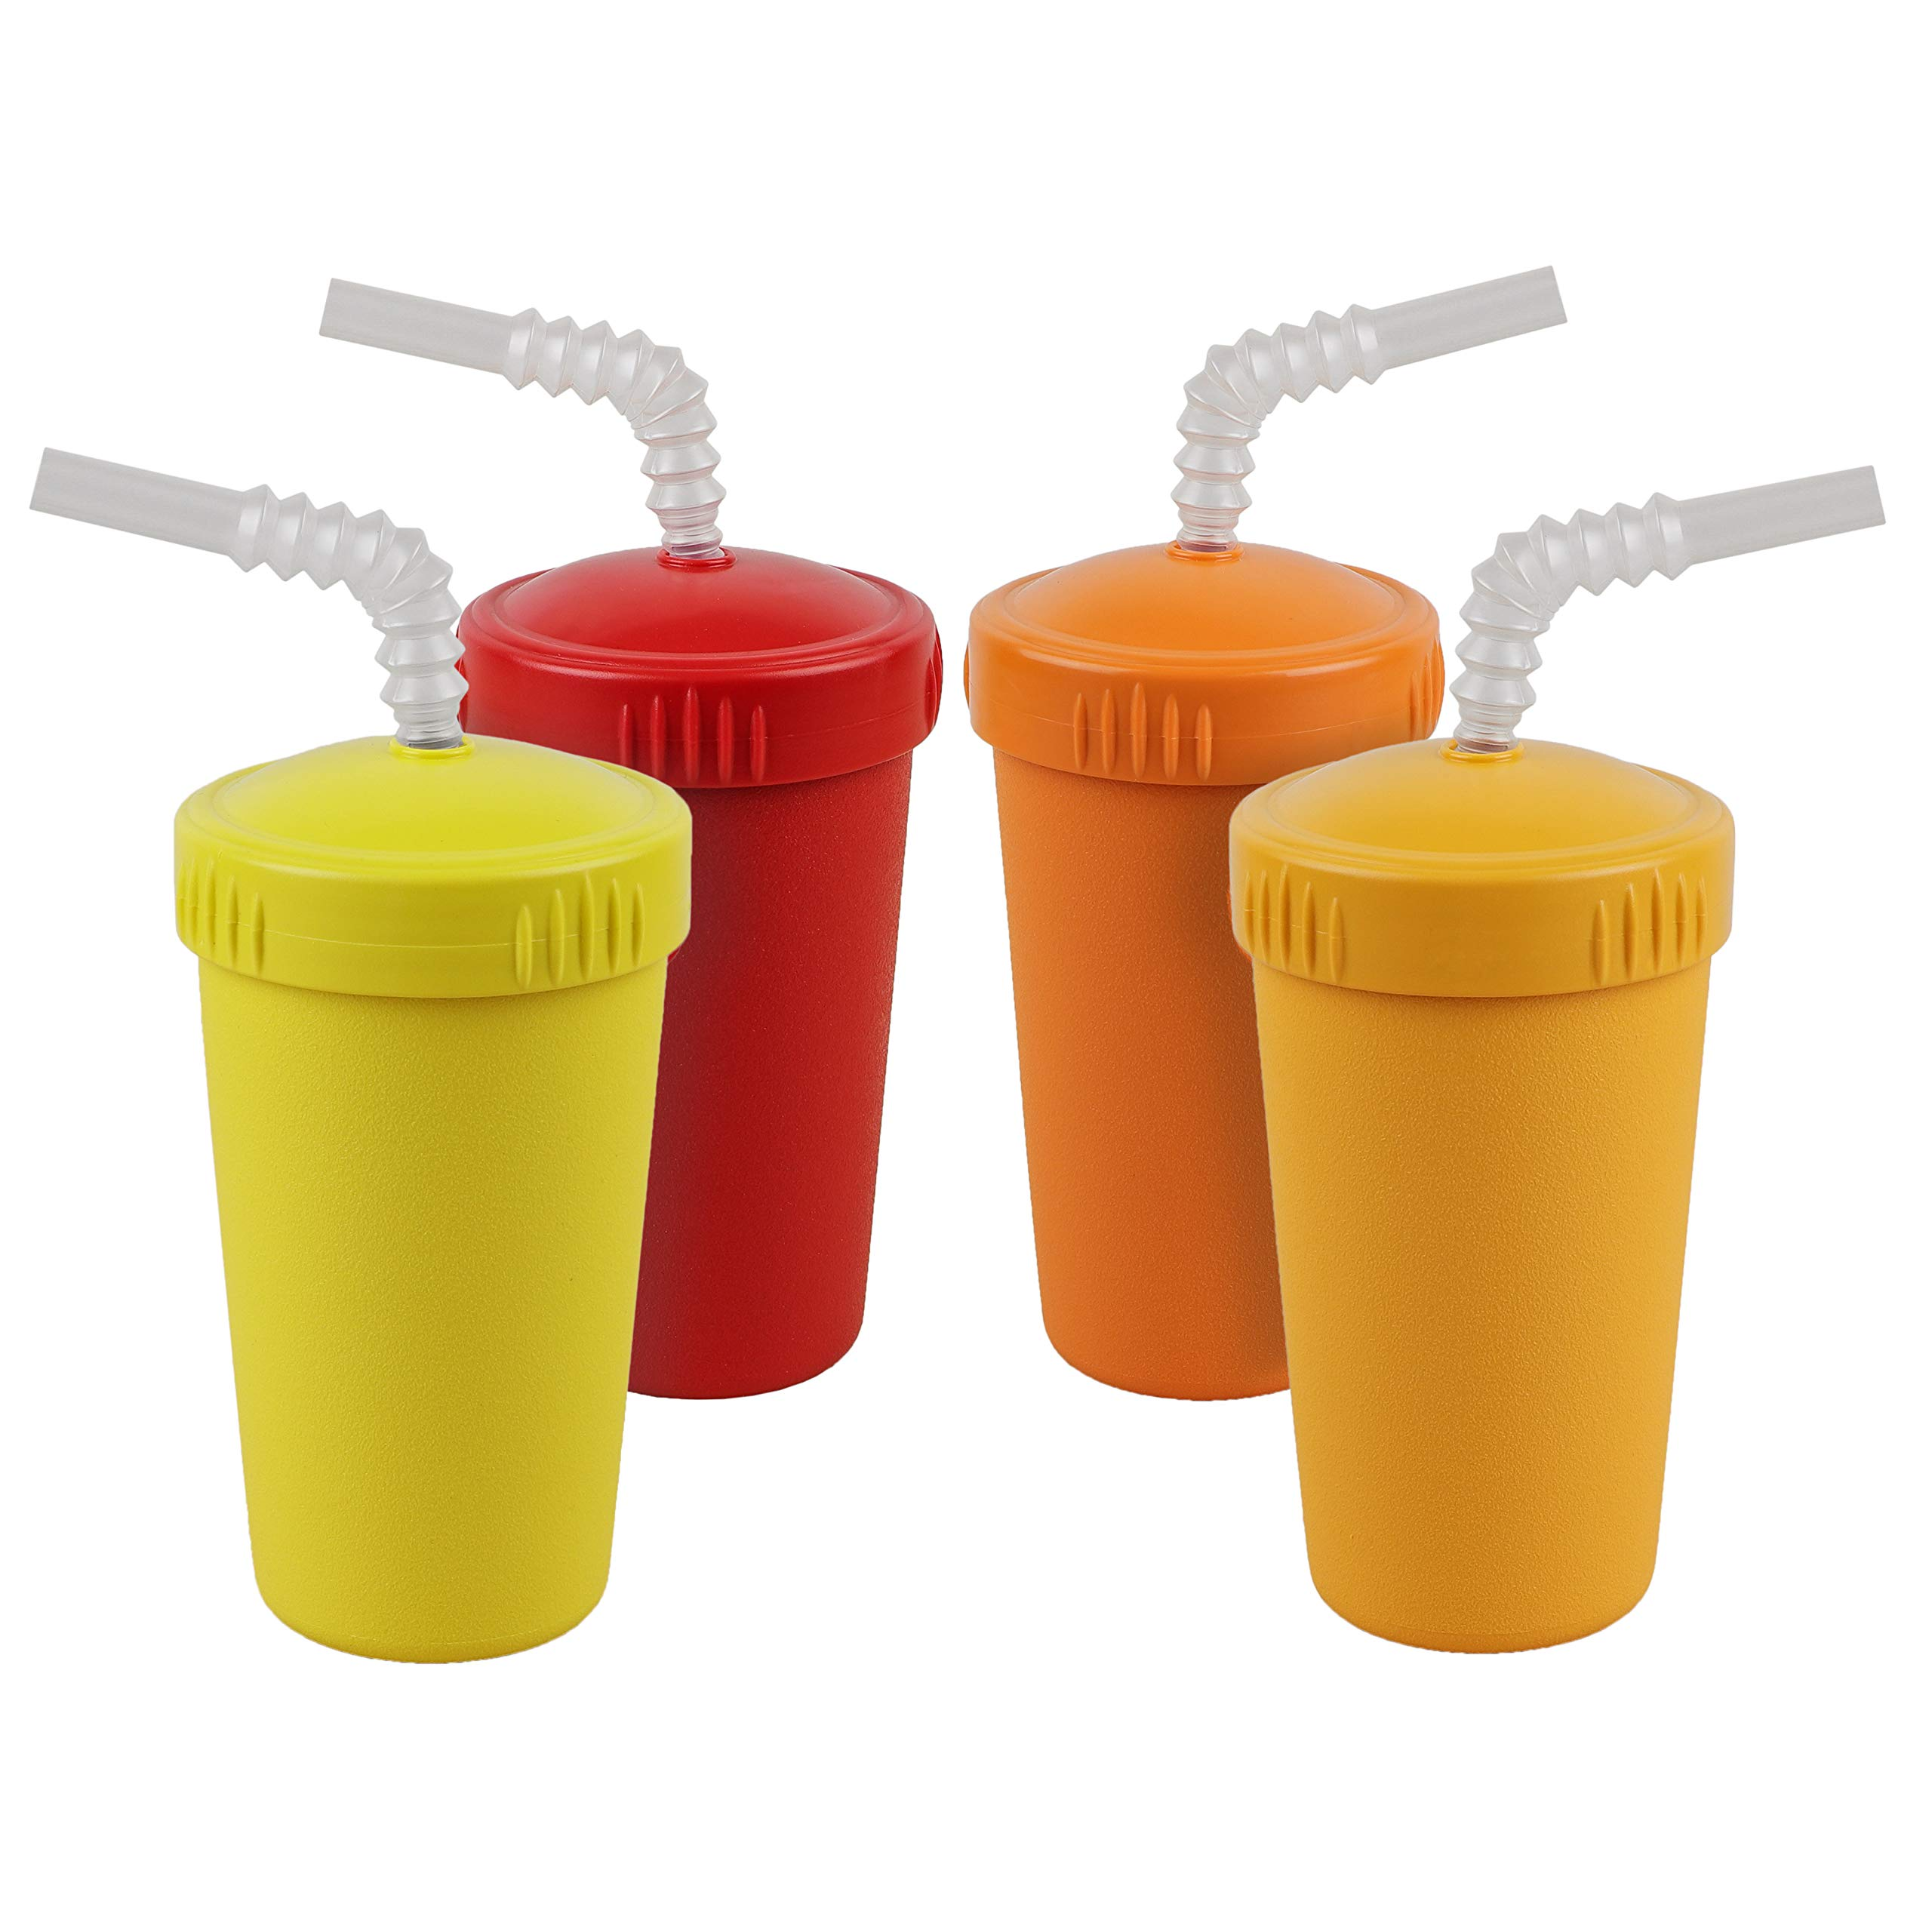 Re-Play Made in USA 4pk Straw Cups with Bendable Straw in Orange, Sunny Yellow, Red and Yellow | Made from Eco Friendly Heavyweight Recycled Milk Jugs - Virtually Indestructible (Fall+)